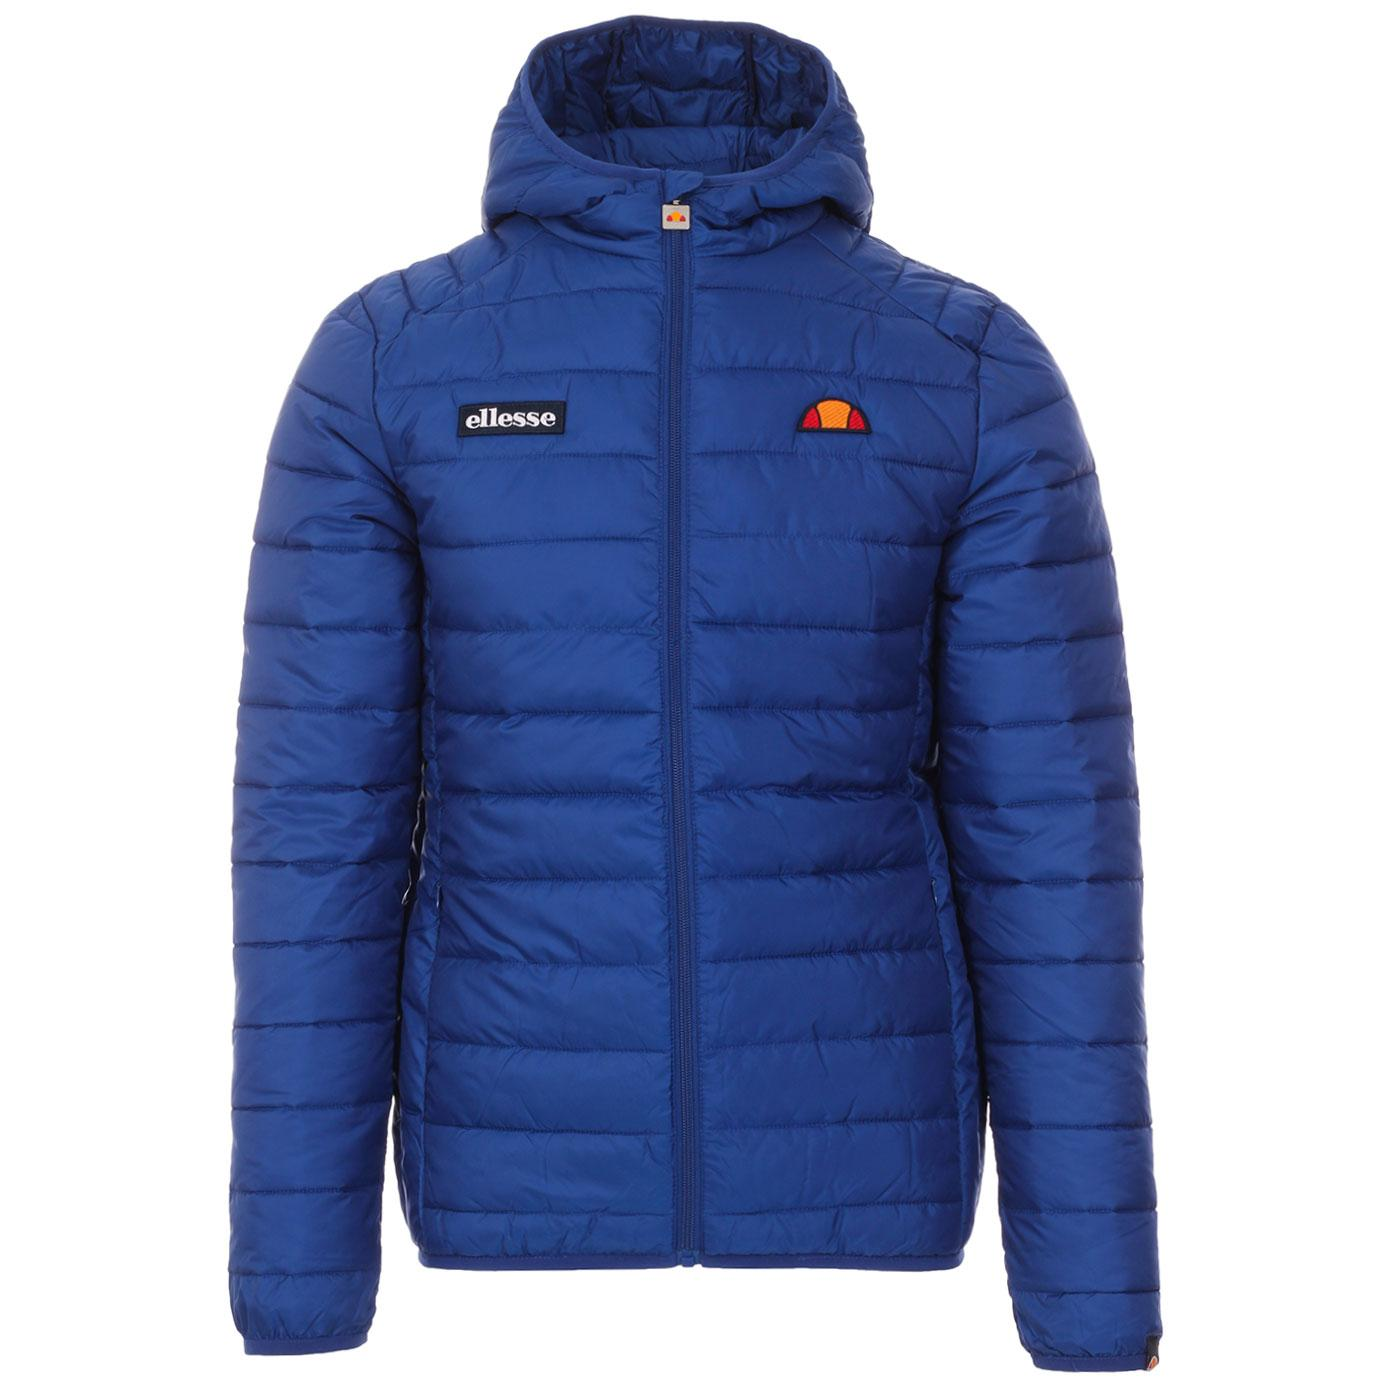 Lombardy ELLESSE Retro Quilted Ski Jacket (Blue)